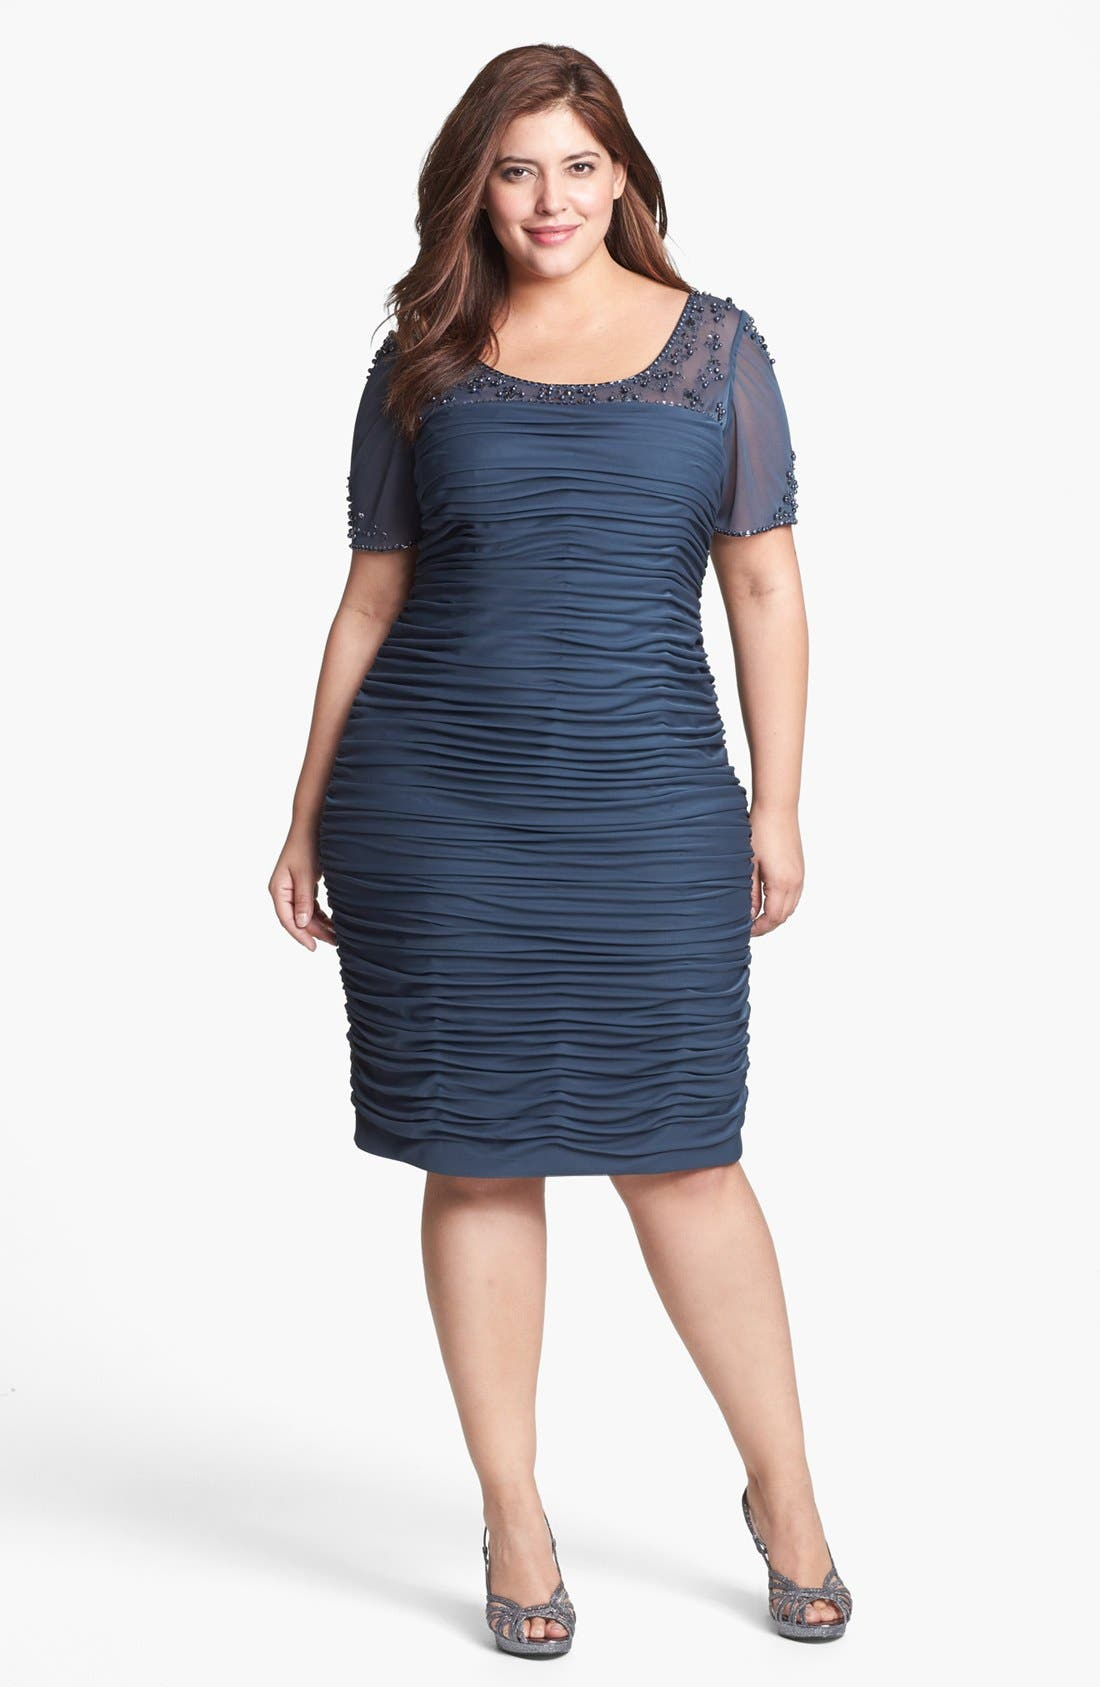 Alternate Image 1 Selected - Adrianna Papell Beaded Illusion Ruched Dress (Plus Size)